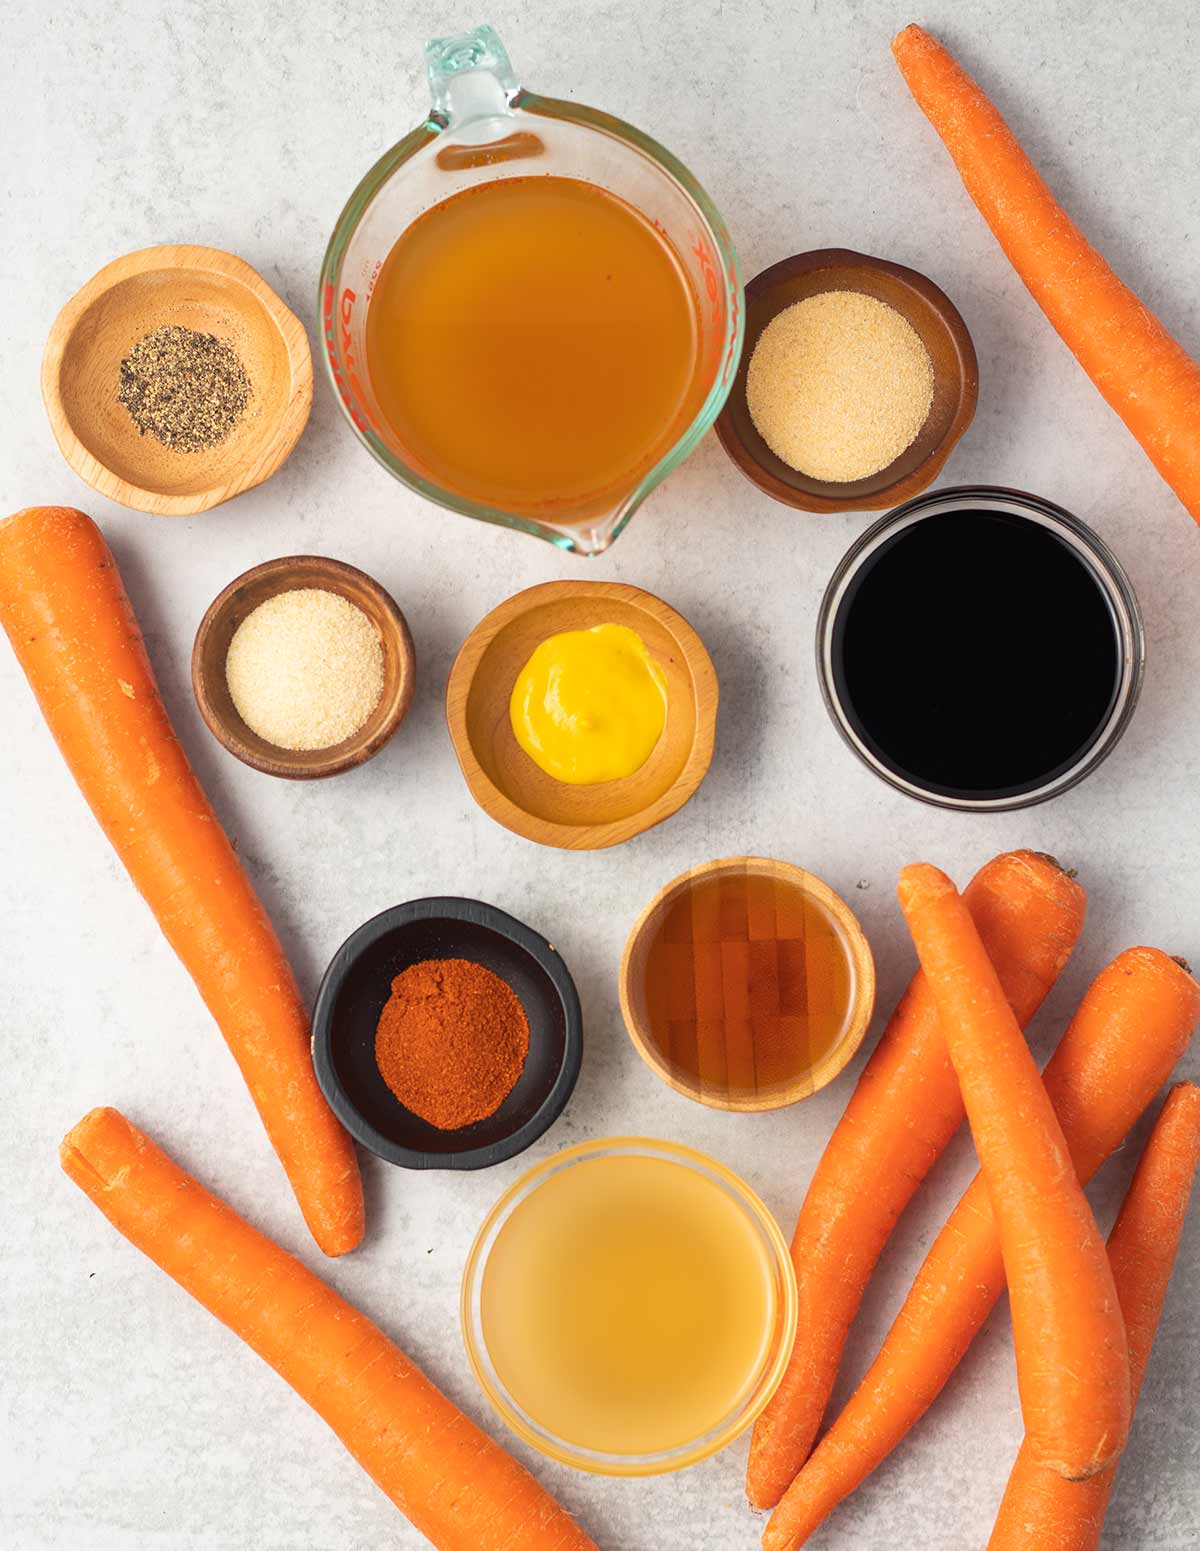 Ingredients for carrot dogs laid out on a surface. There are carrots scattered throughout, a measuring cup of vegetable broth, and small bowls containing black pepper, garlic powder, onion powder, mustard, soy sauce, smoked paprika, maple syrup, and apple cider vinegar.